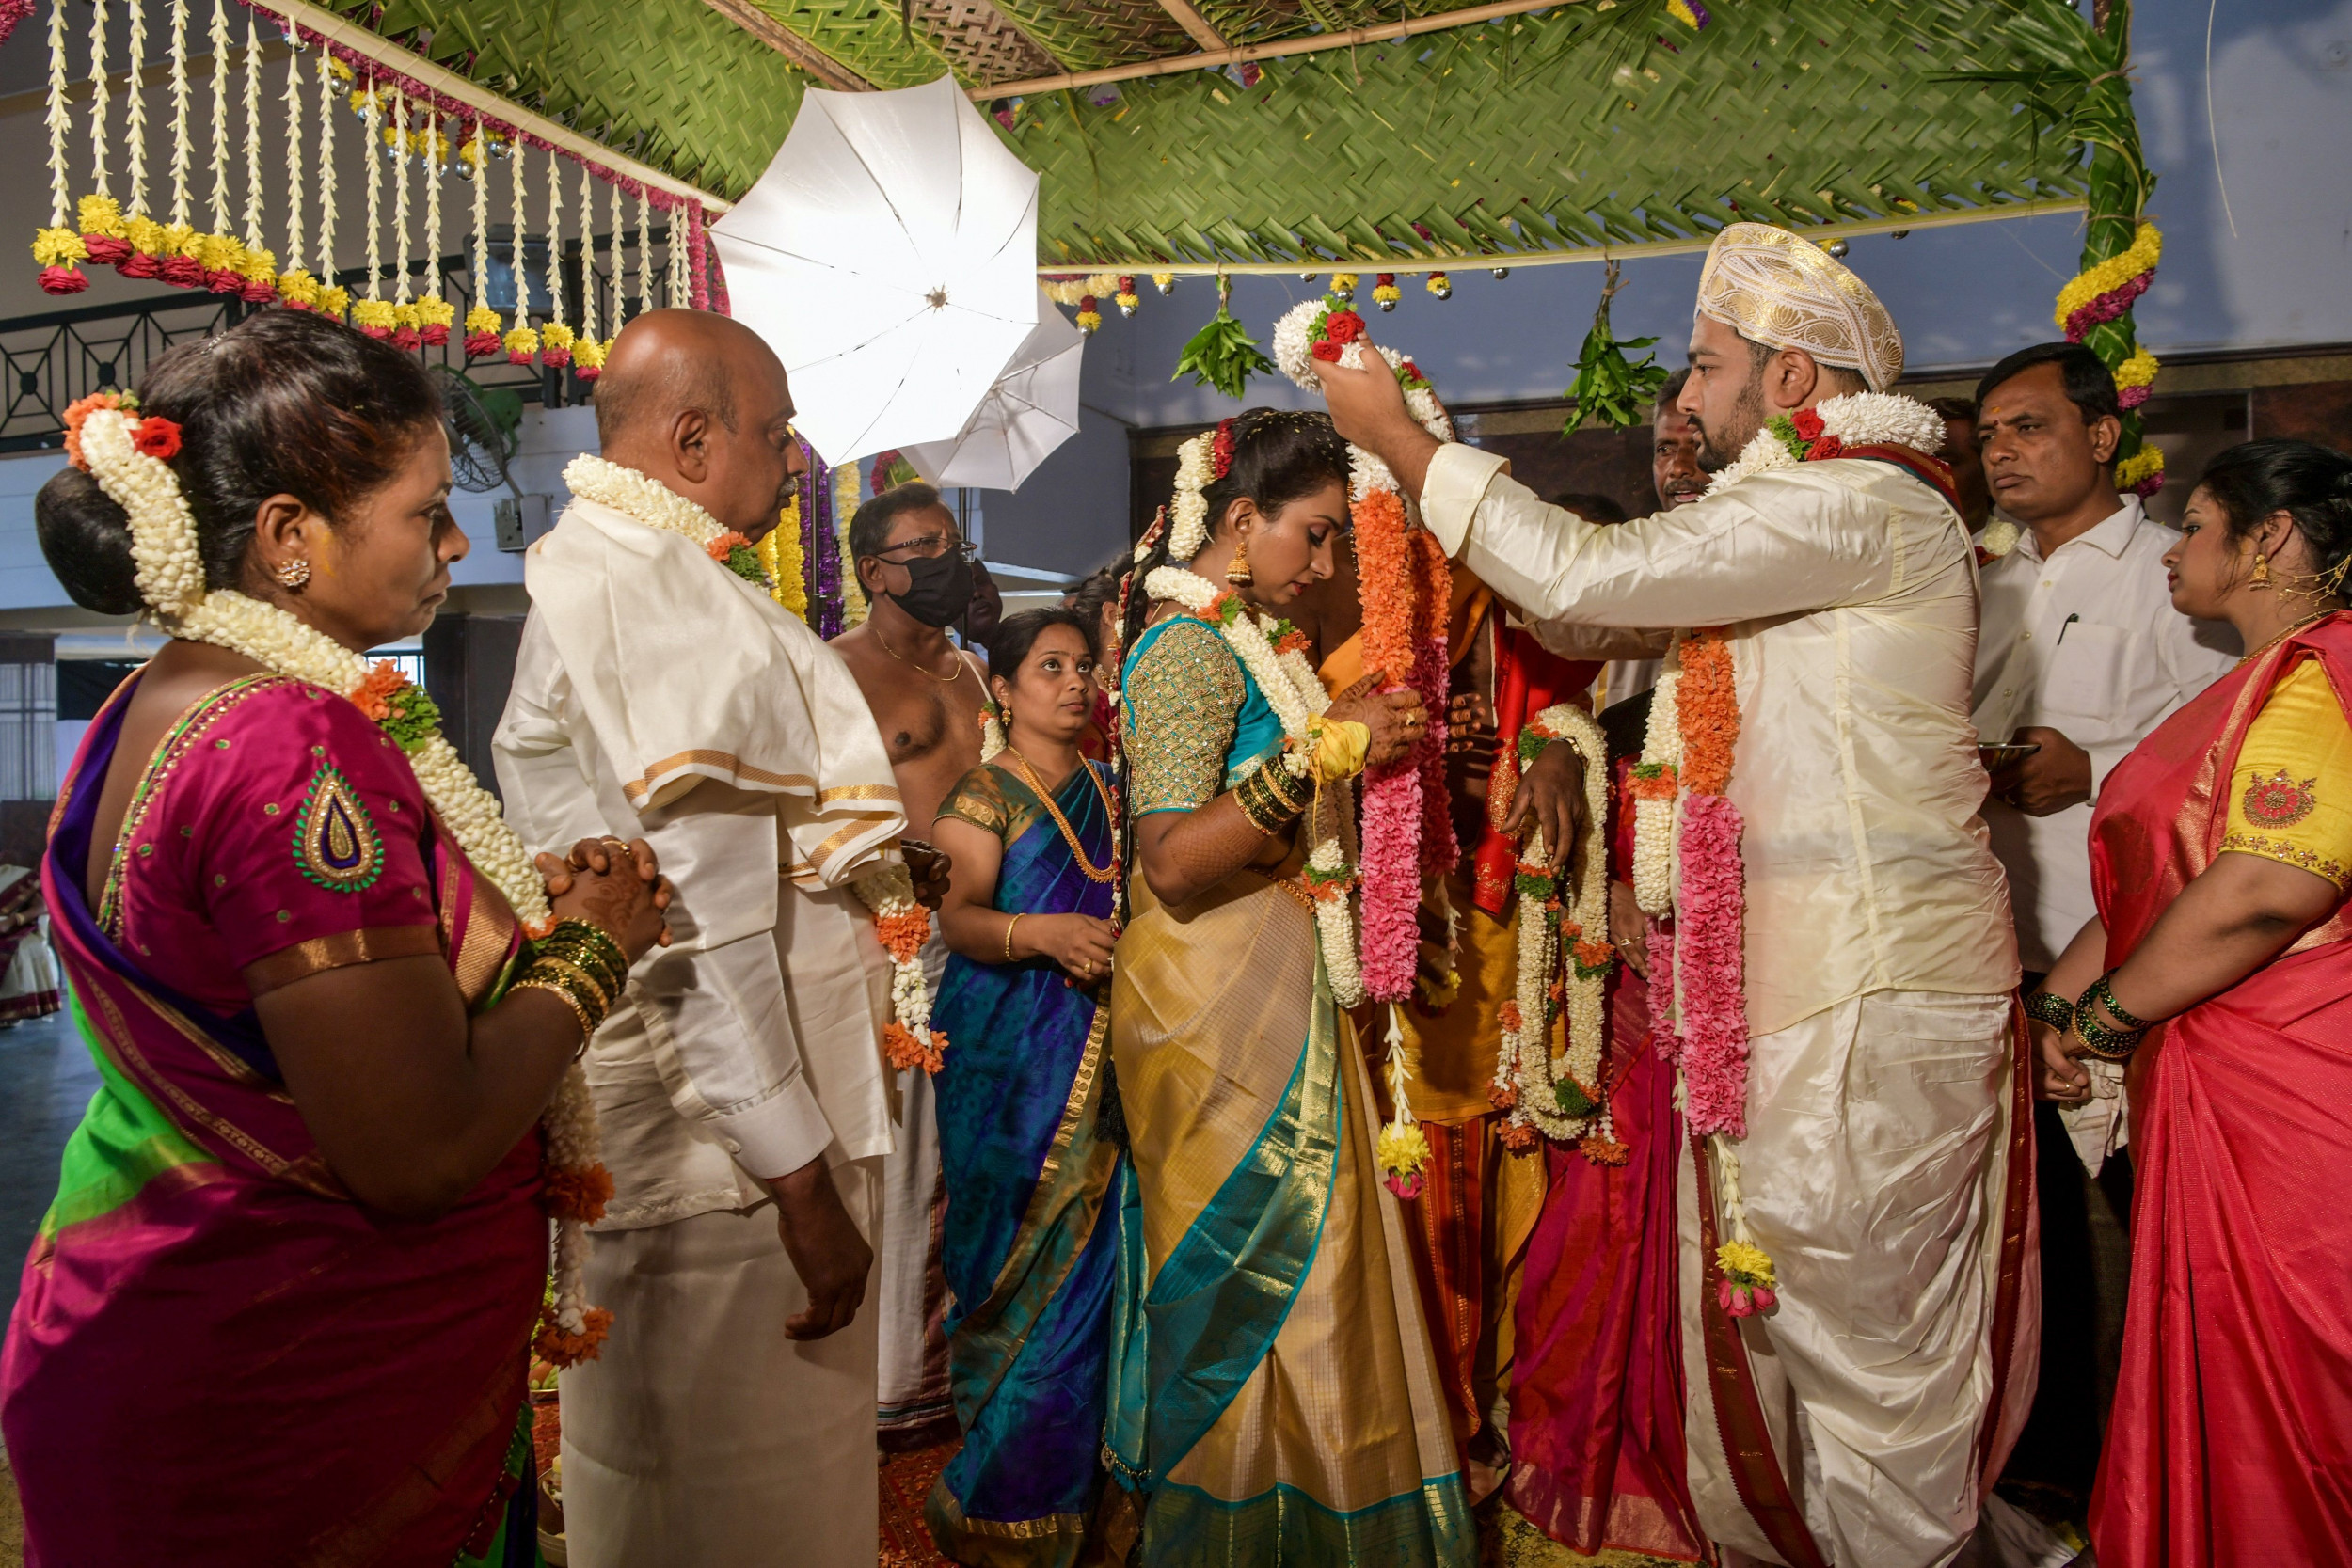 Coronavirus outbreak at wedding kills groom, infects over 100 guests